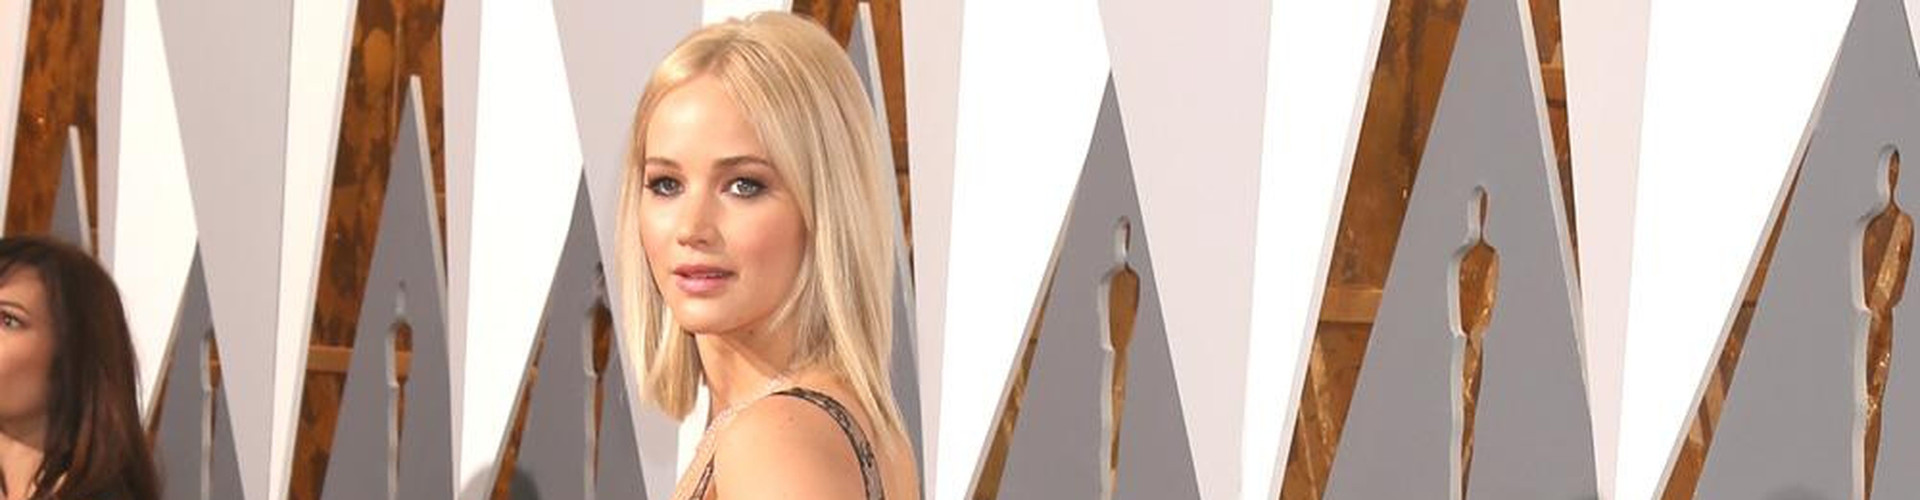 Jennifer Lawrence's fierce Oscar look